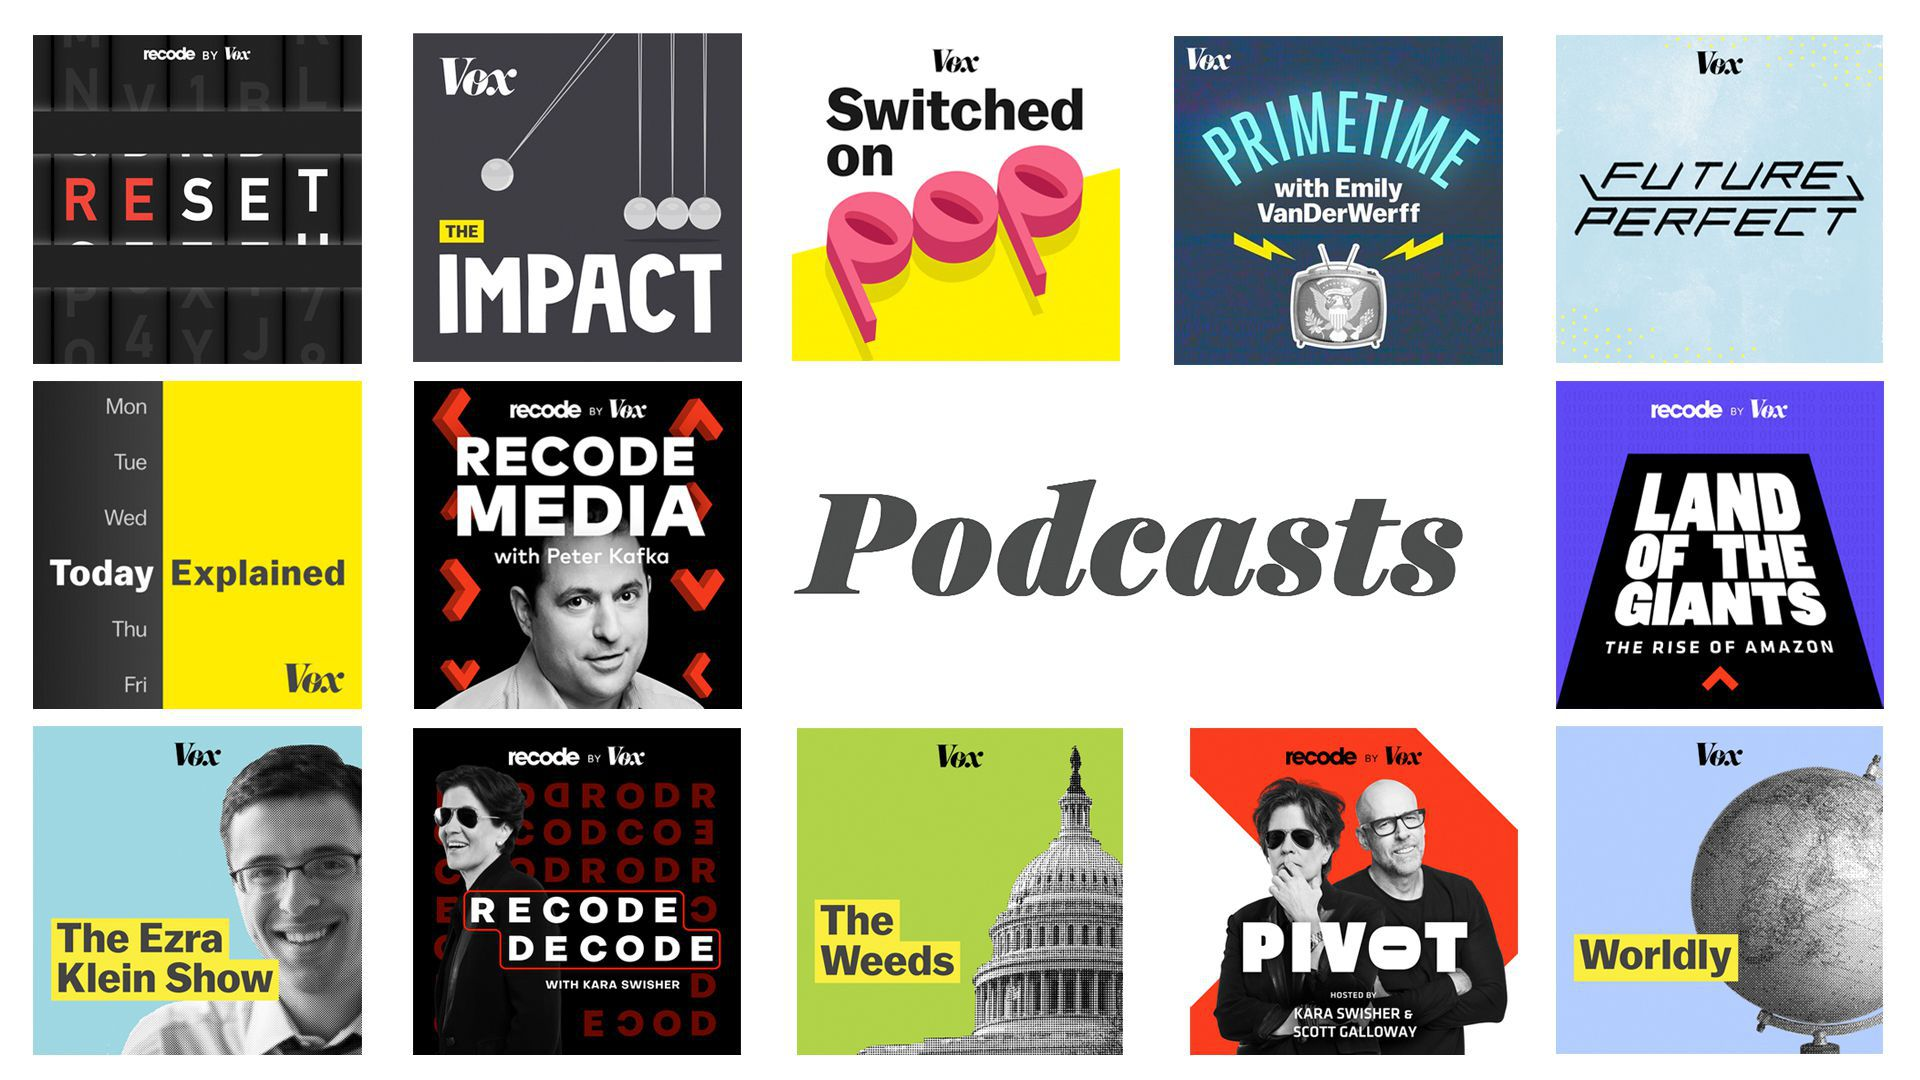 Vox Media now publishes more than 200 podcasts